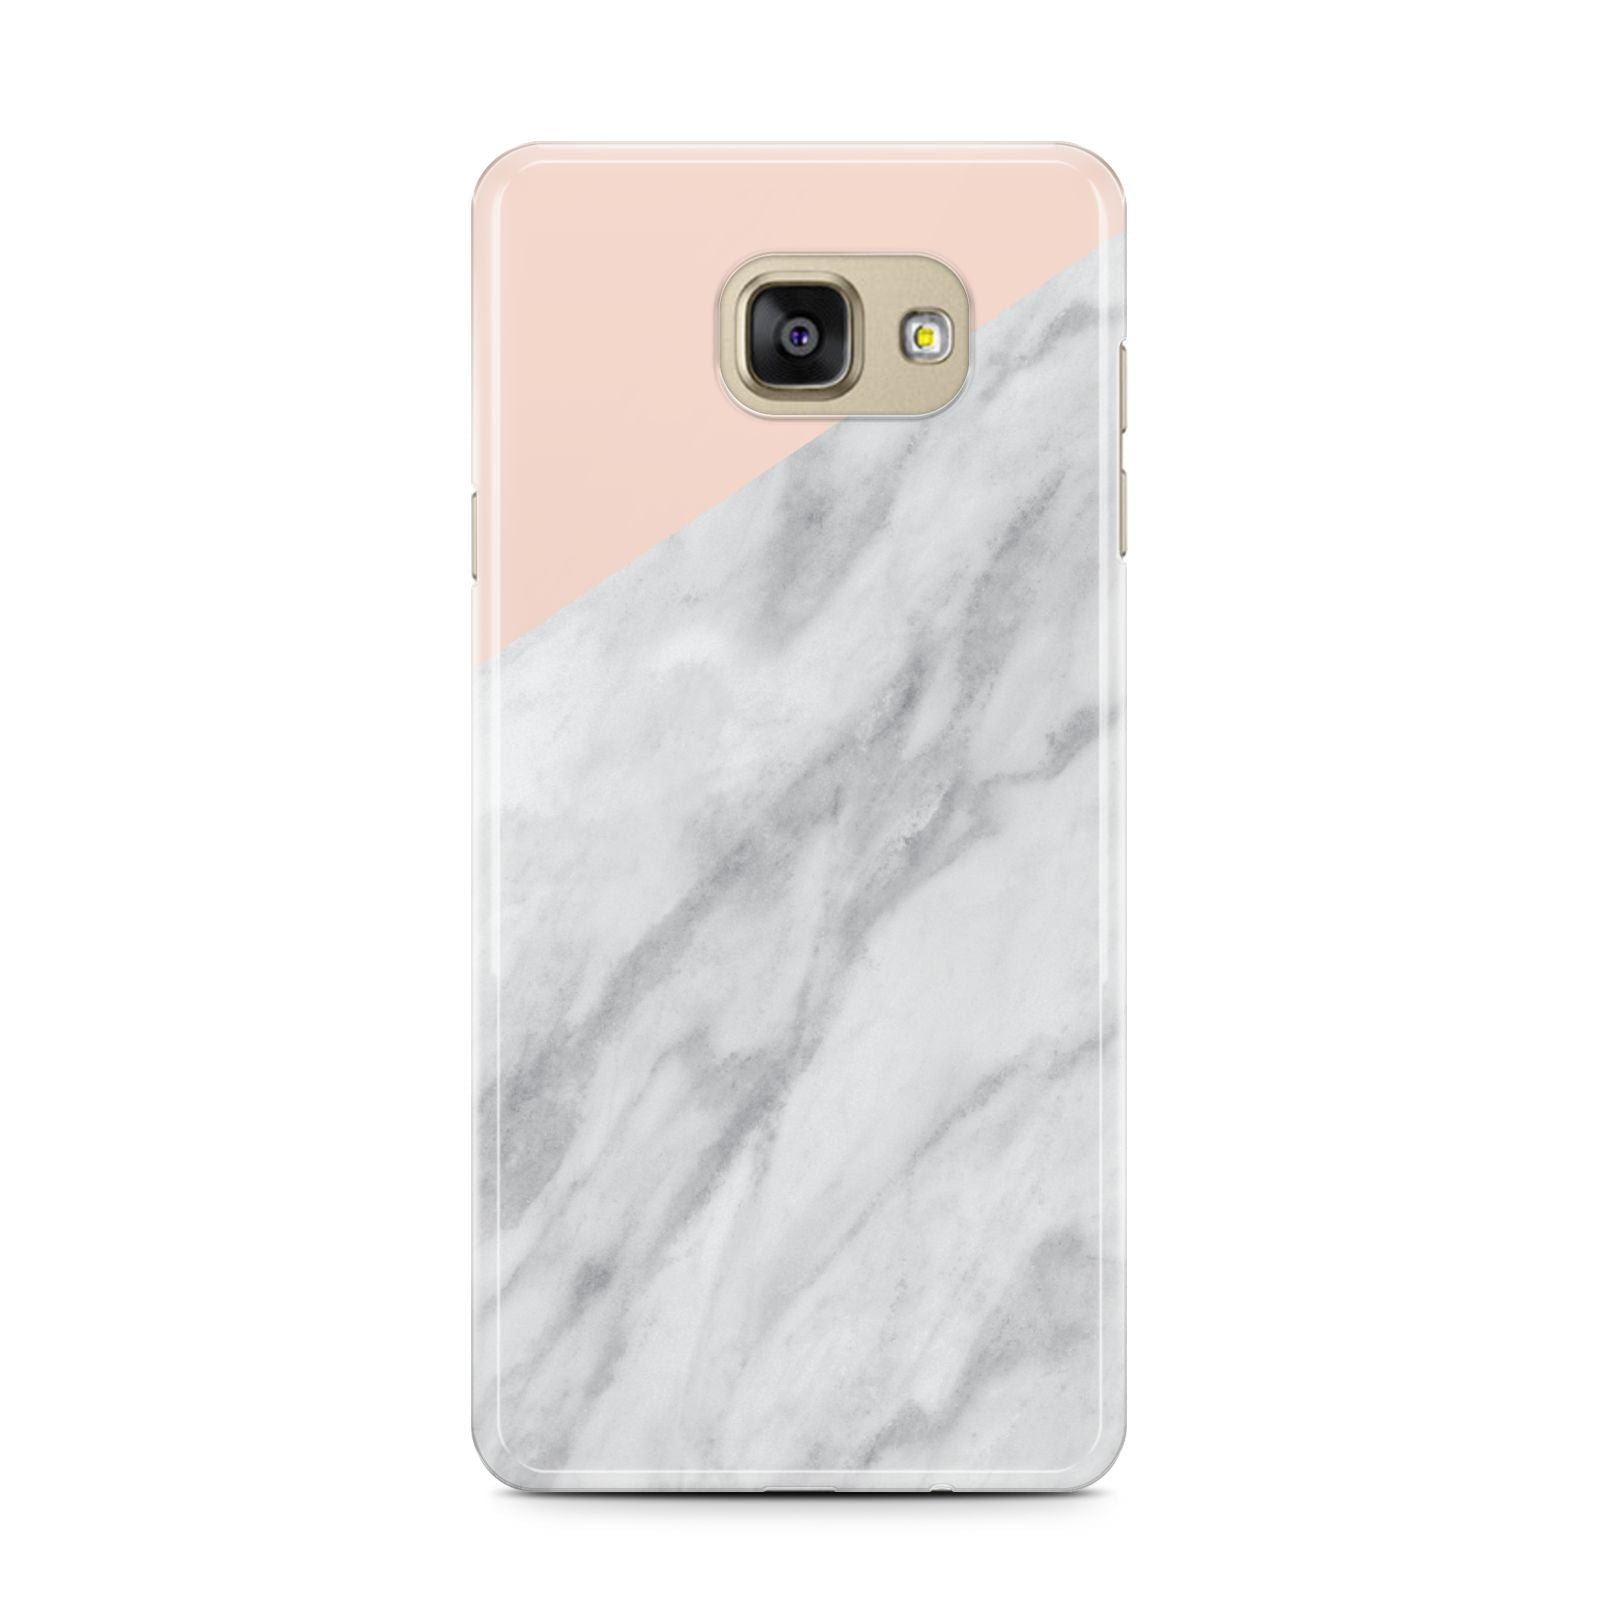 Marble Pink White Grey Samsung Galaxy A7 2016 Case on gold phone